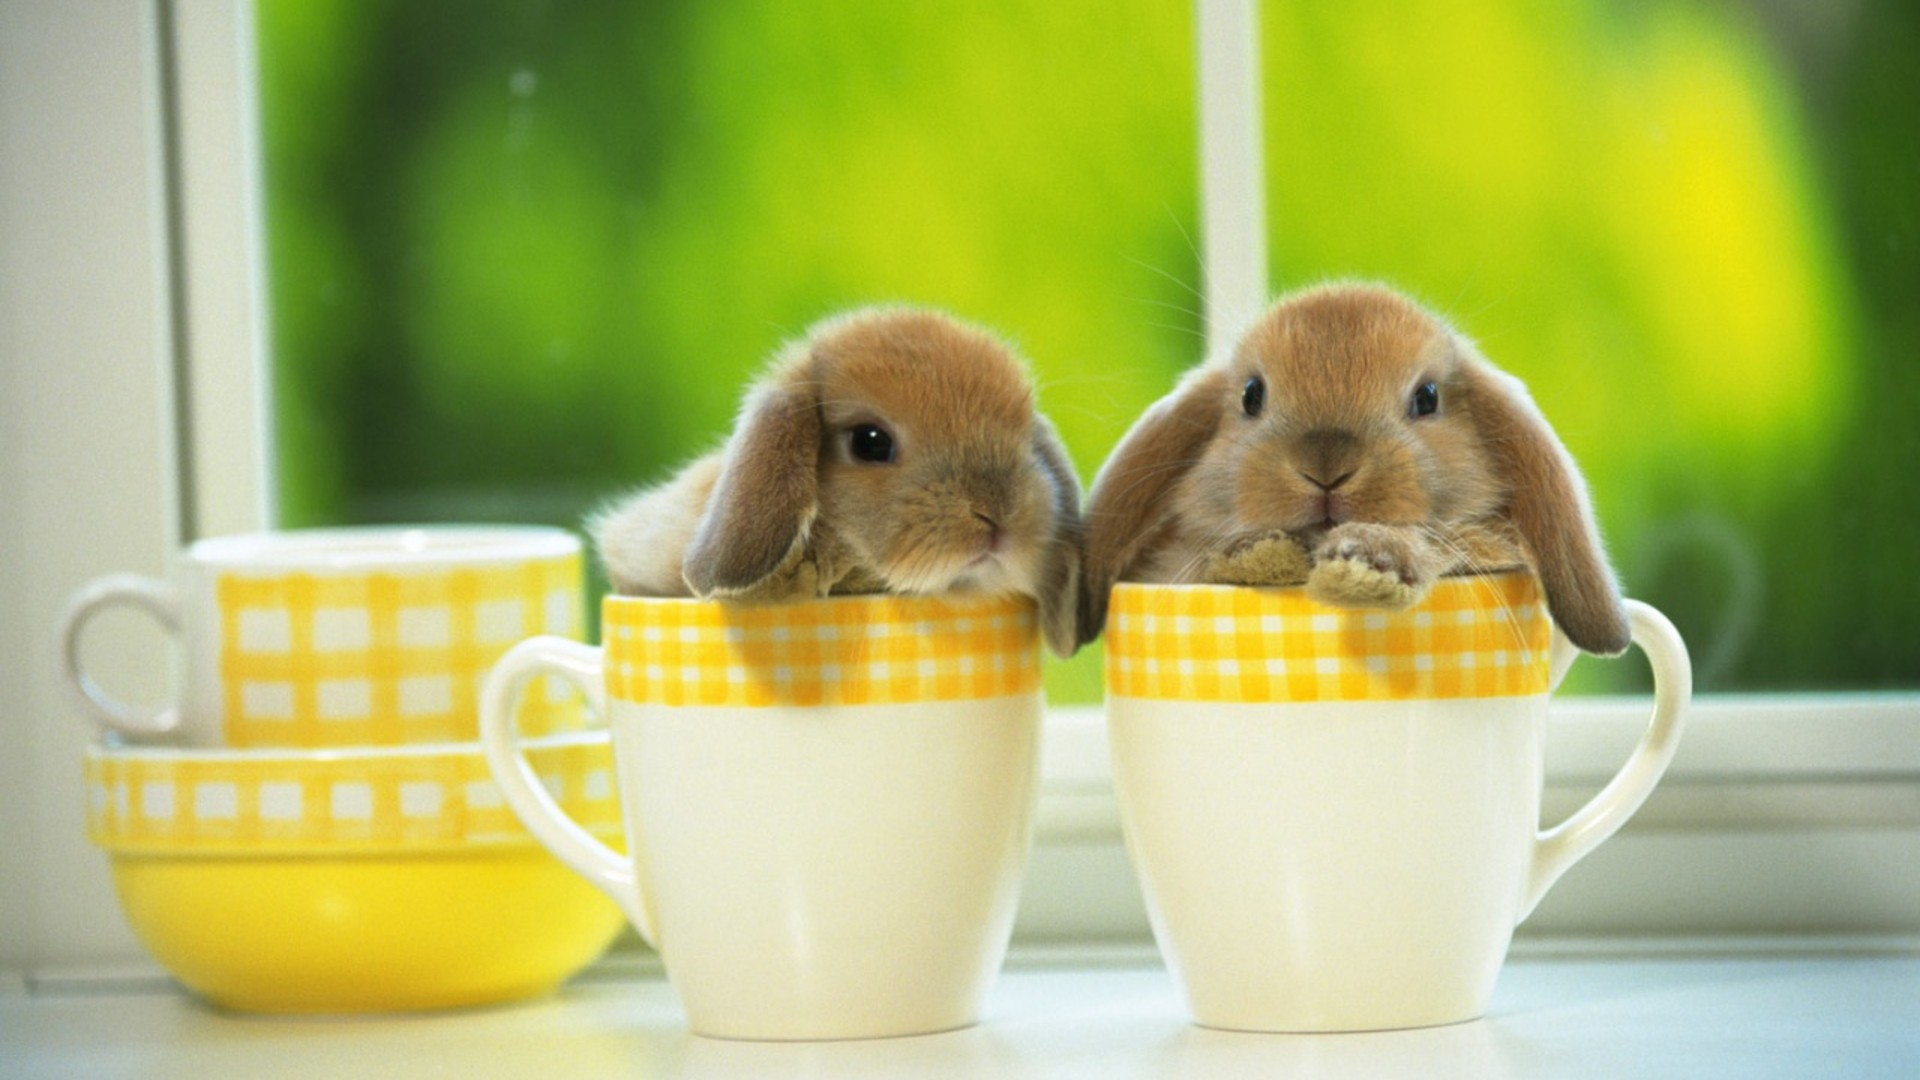 PC.7676, Bunny Desktop HD Photo